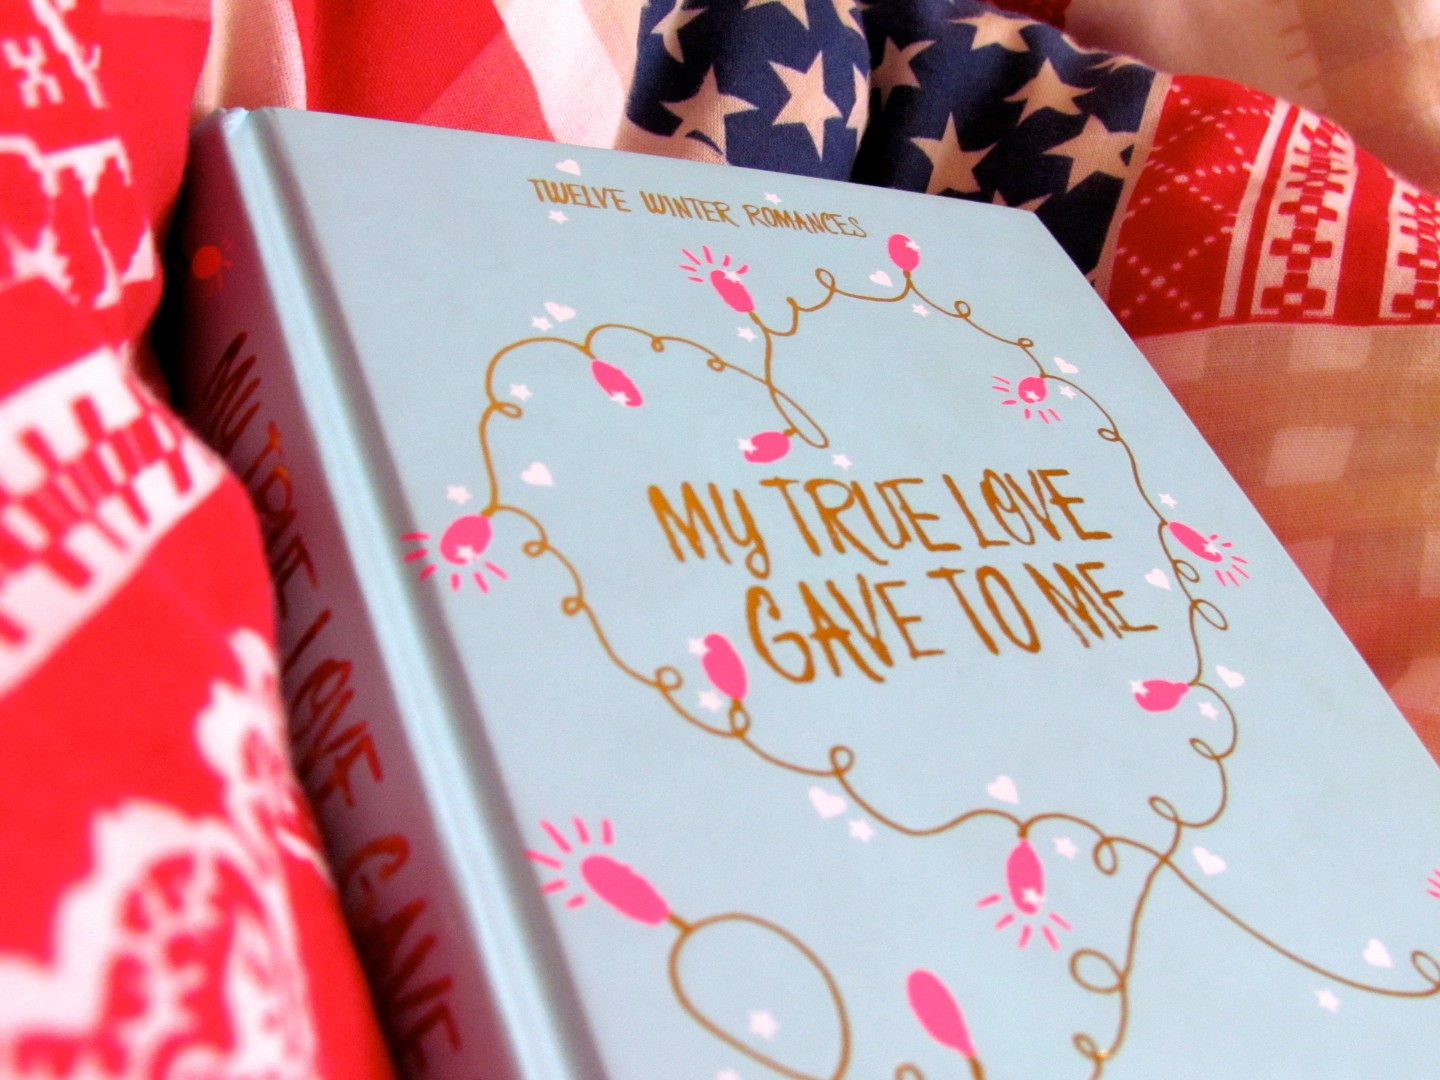 REVIEW: My True Love Gave to Me by Stephanie Perkins